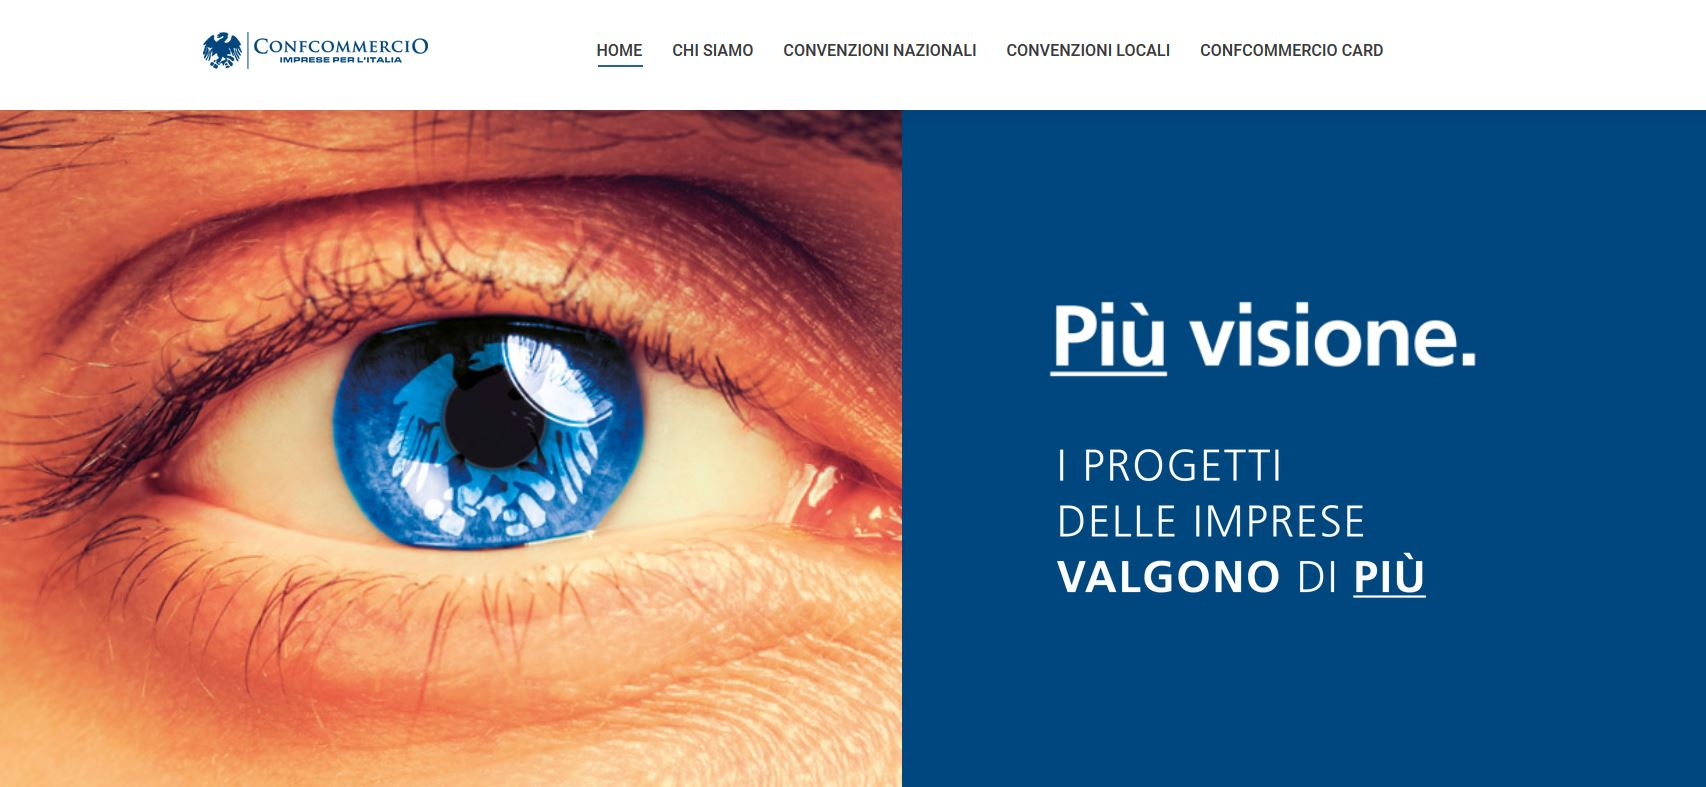 web maerketing umbria